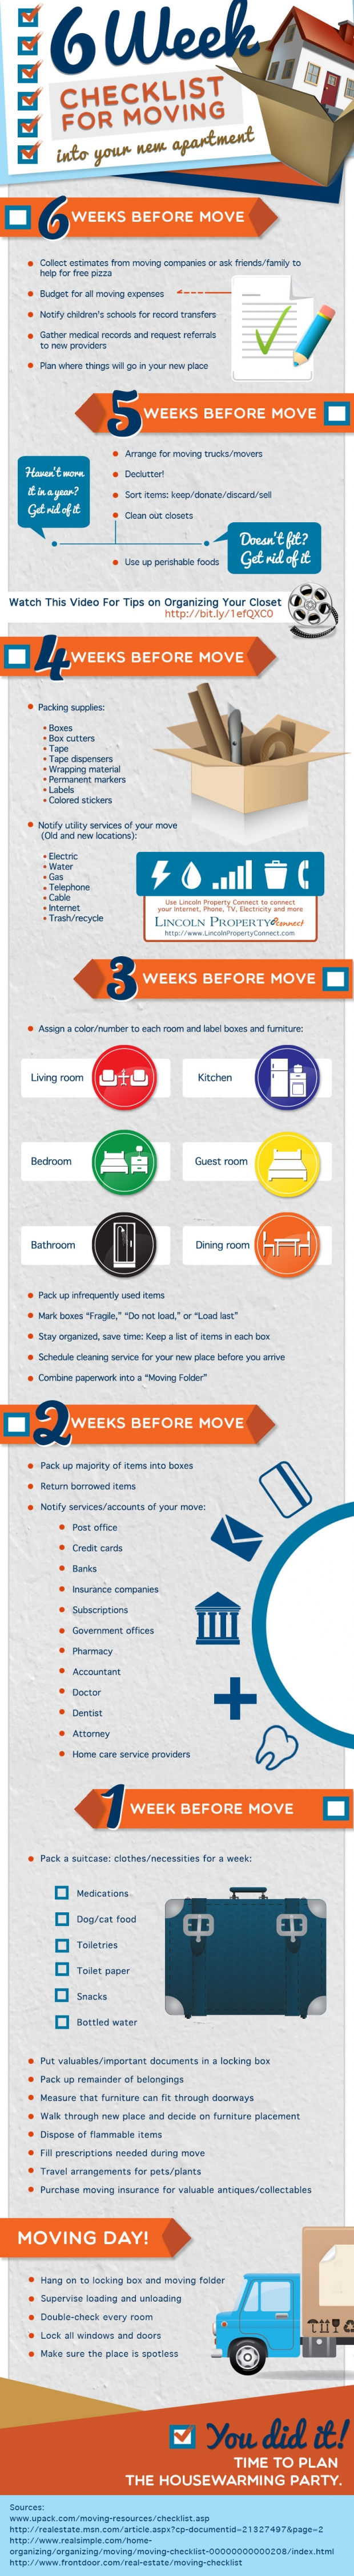 6-Week-Checklist-For-Moving2